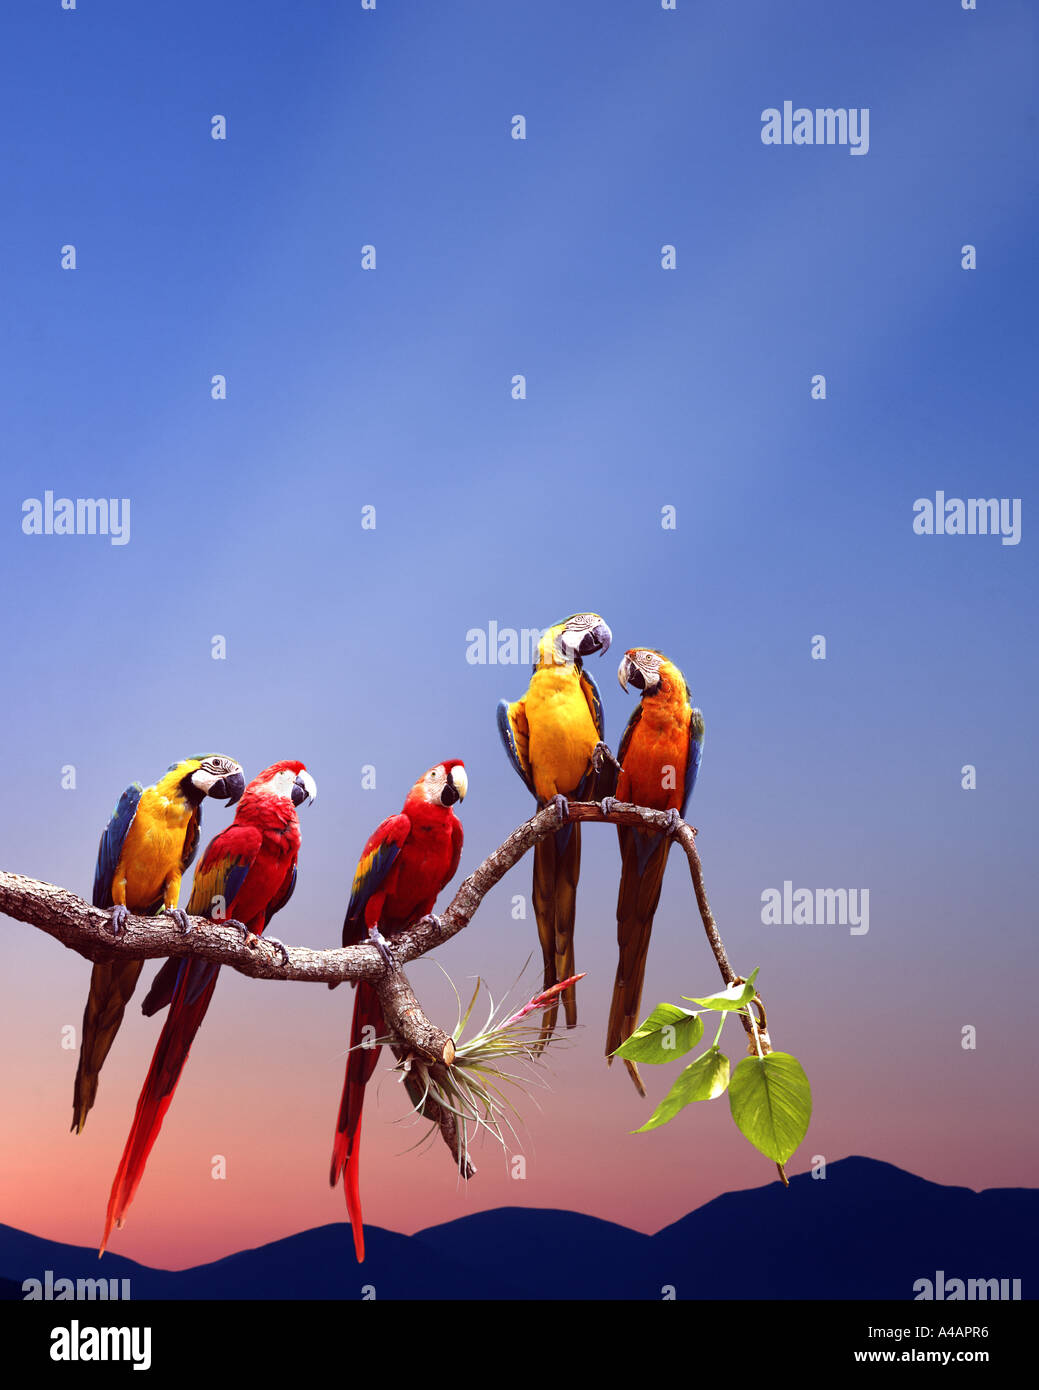 WILDLIFE:  Parrots sitting on a branch - Stock Image